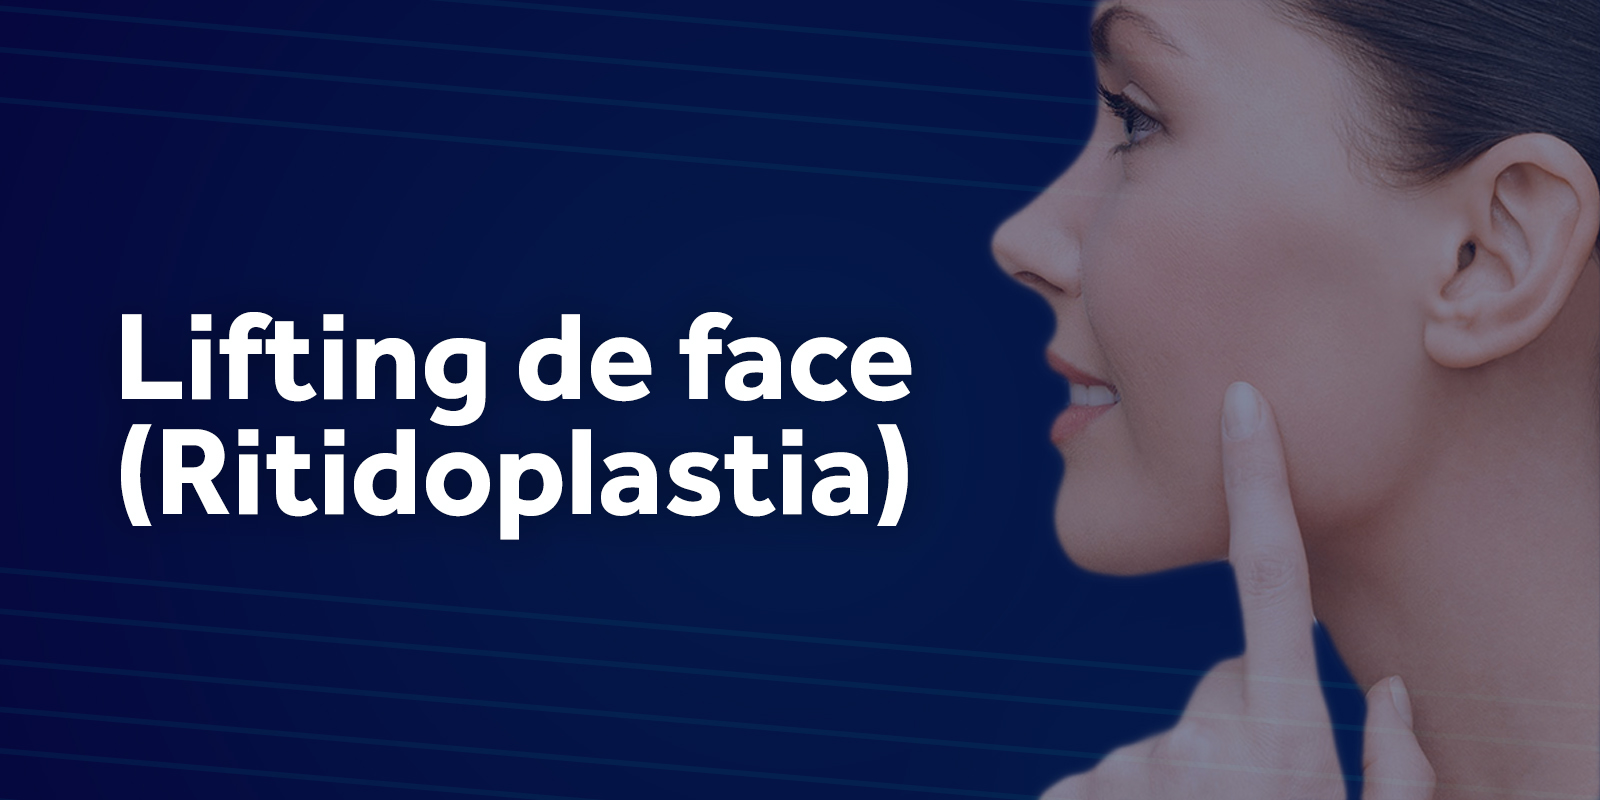 Ritidoplastia (Lifting de face)